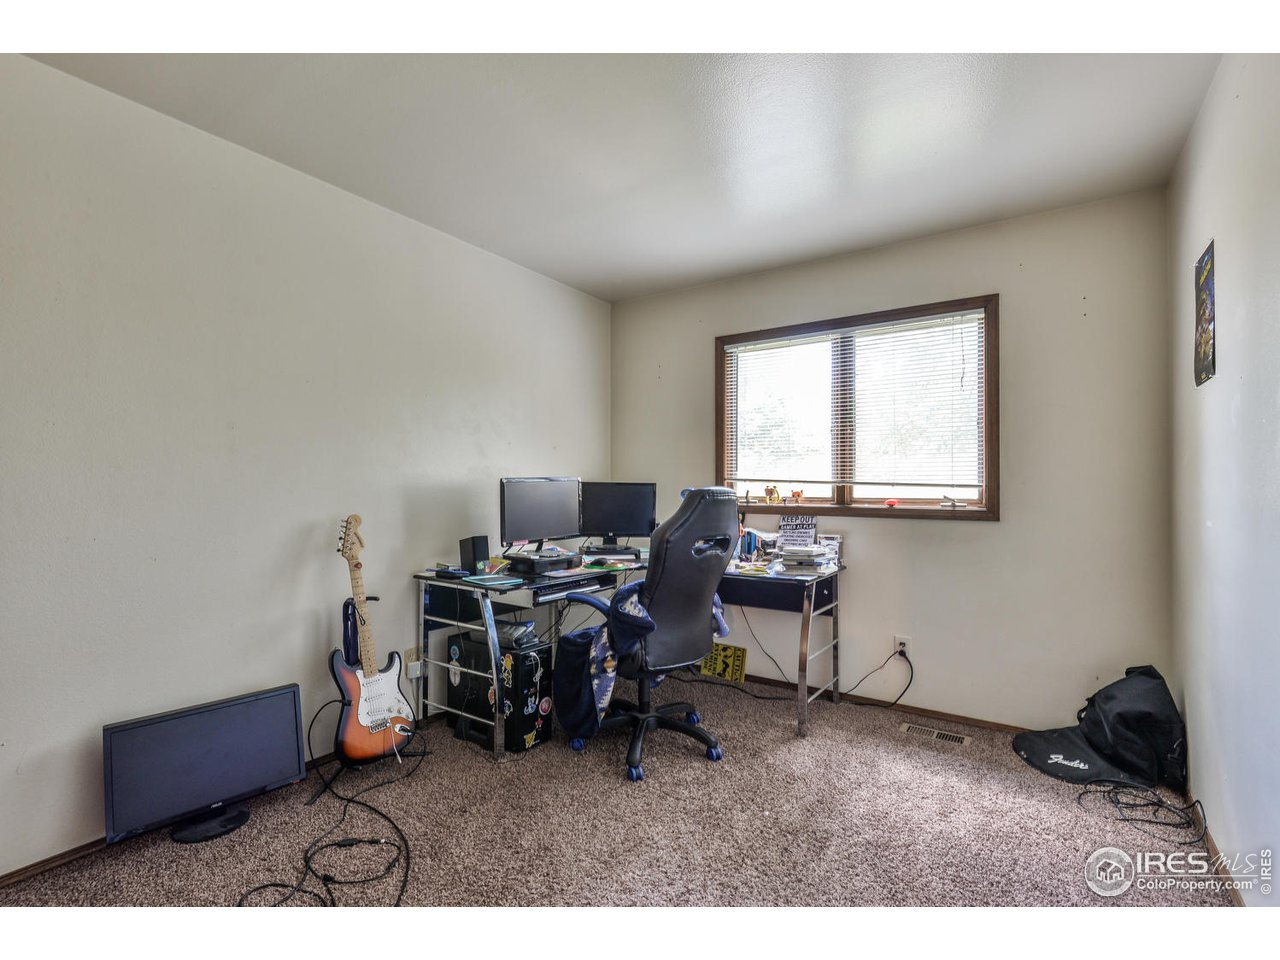 Office, music room, or?